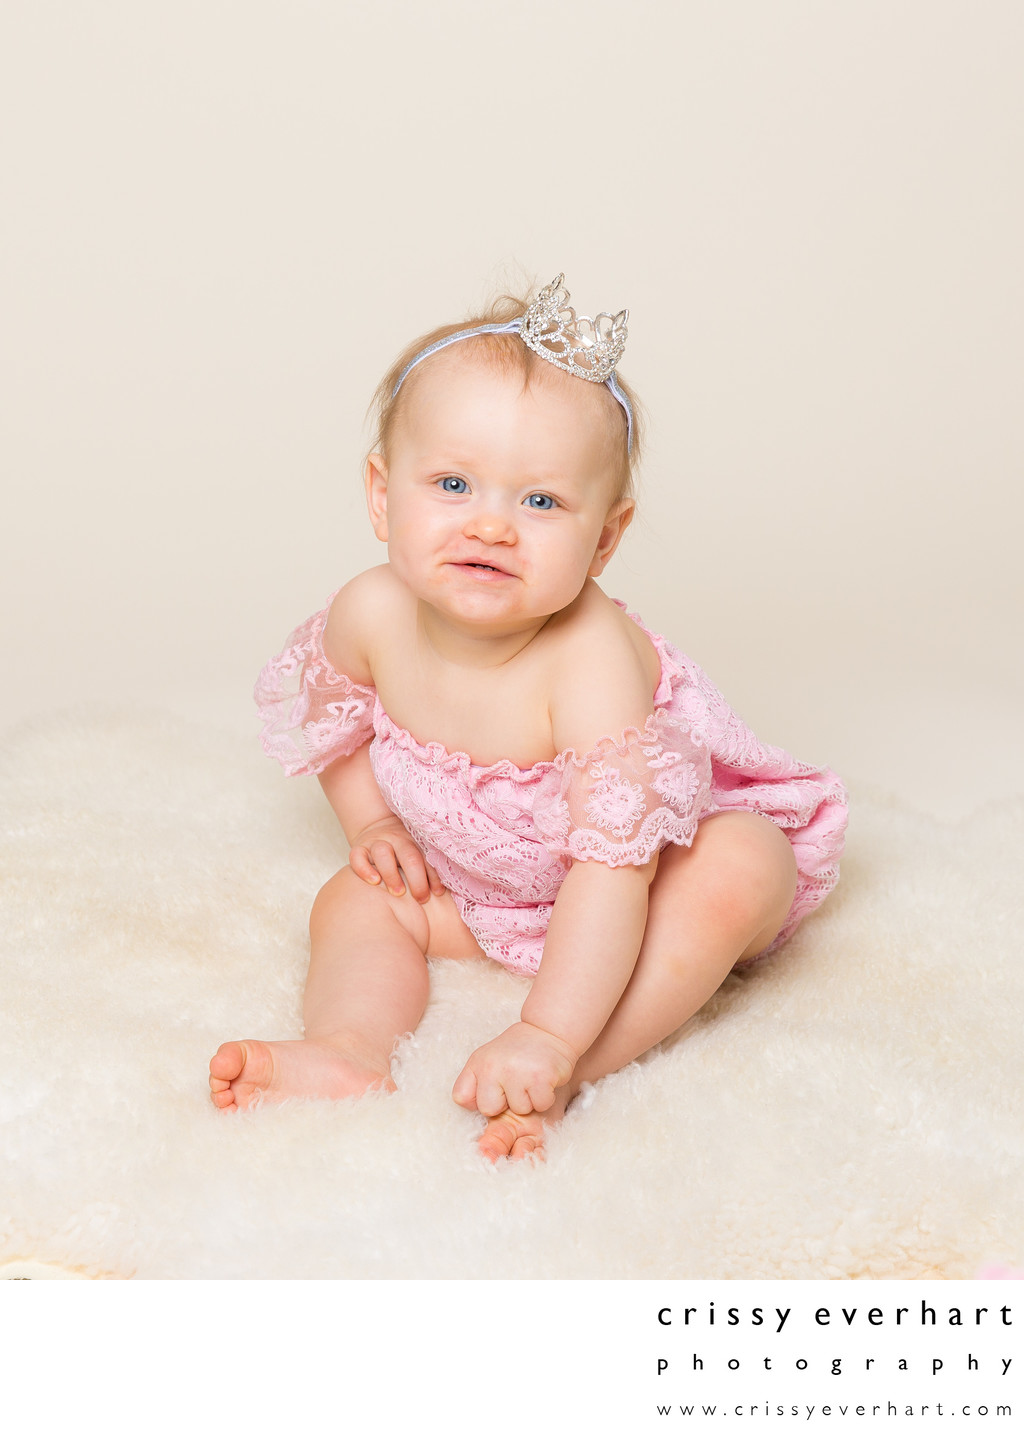 One Year Old Girl with Crown on Ivory Background